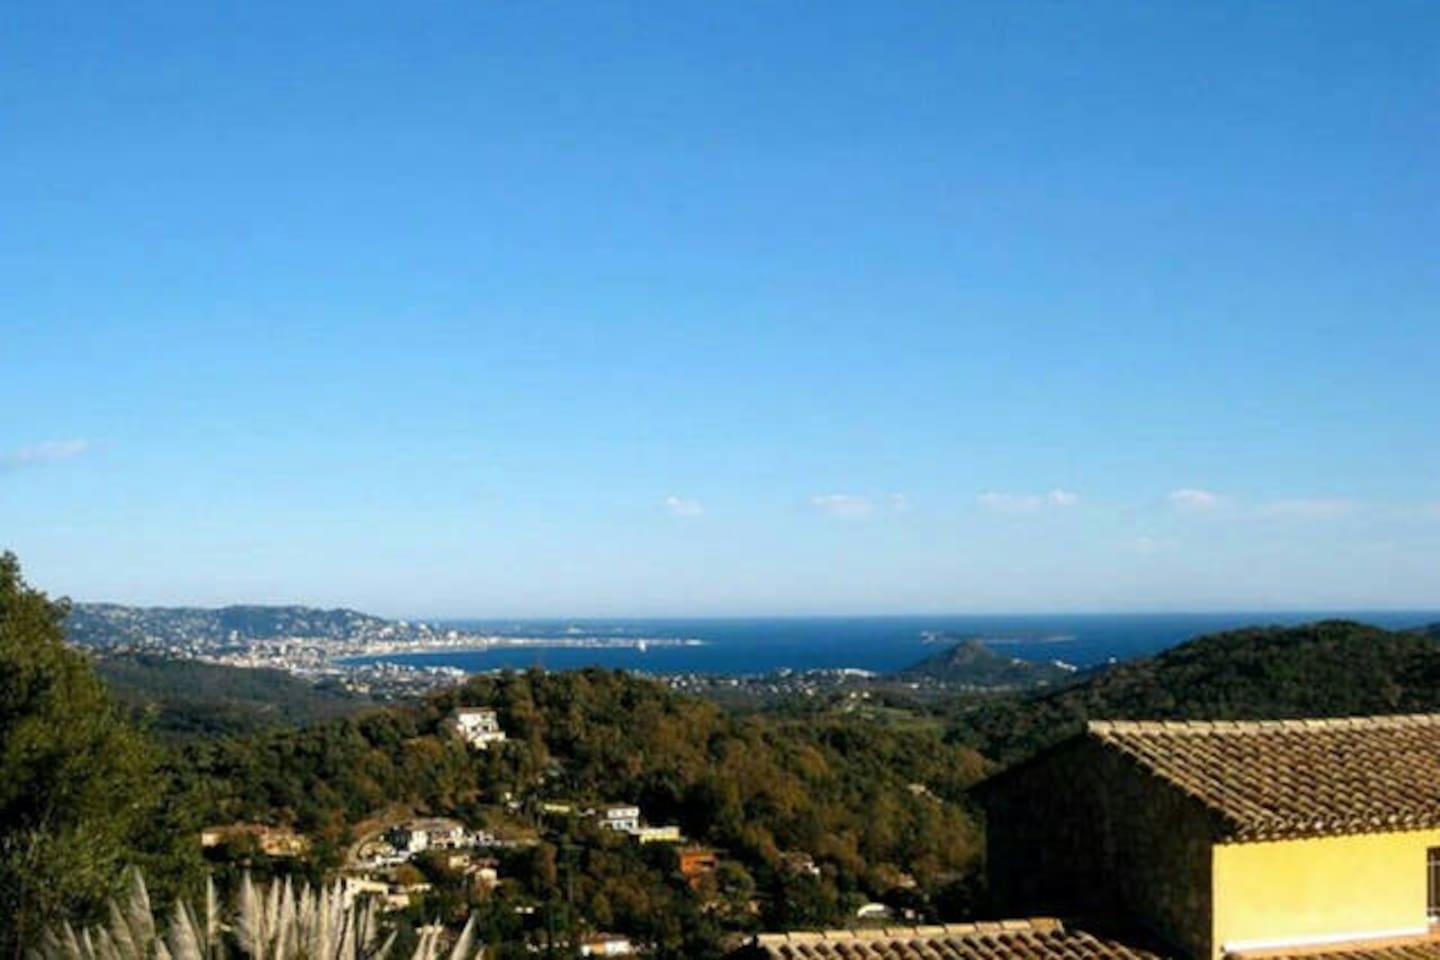 Villa Kinza - Panoramablick auf die Bucht von Cannes / Villa Kinza - panoramic view overlooking the bay of Cannes